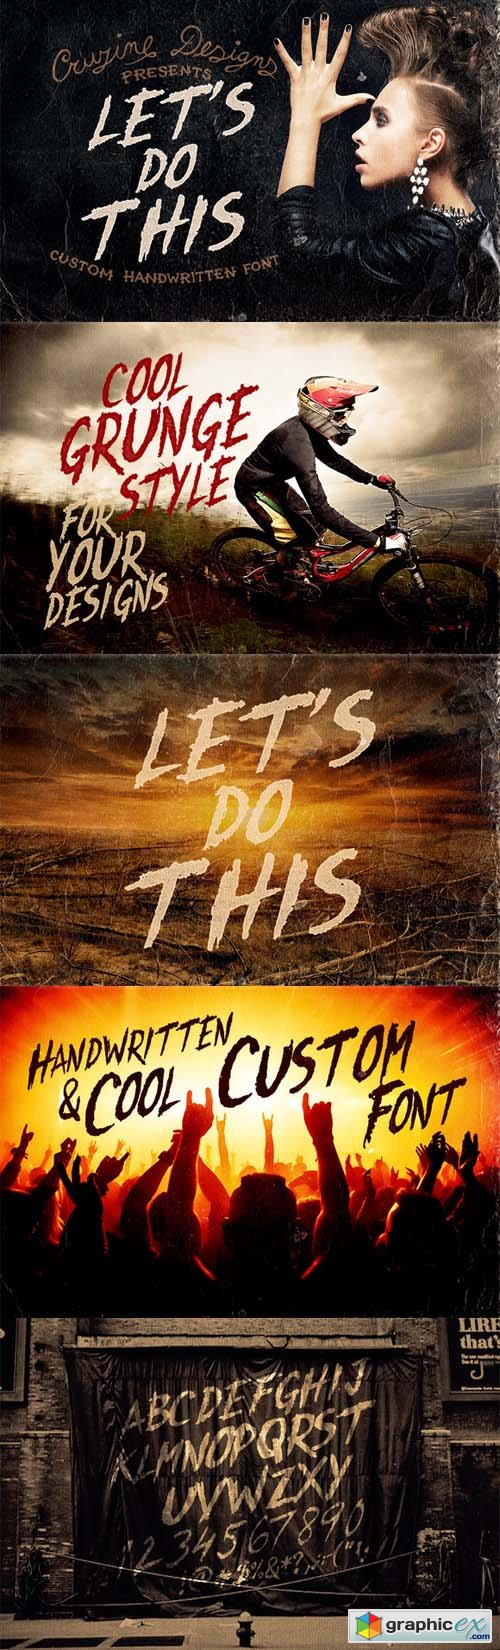 Let's Do This Custom Font 75564